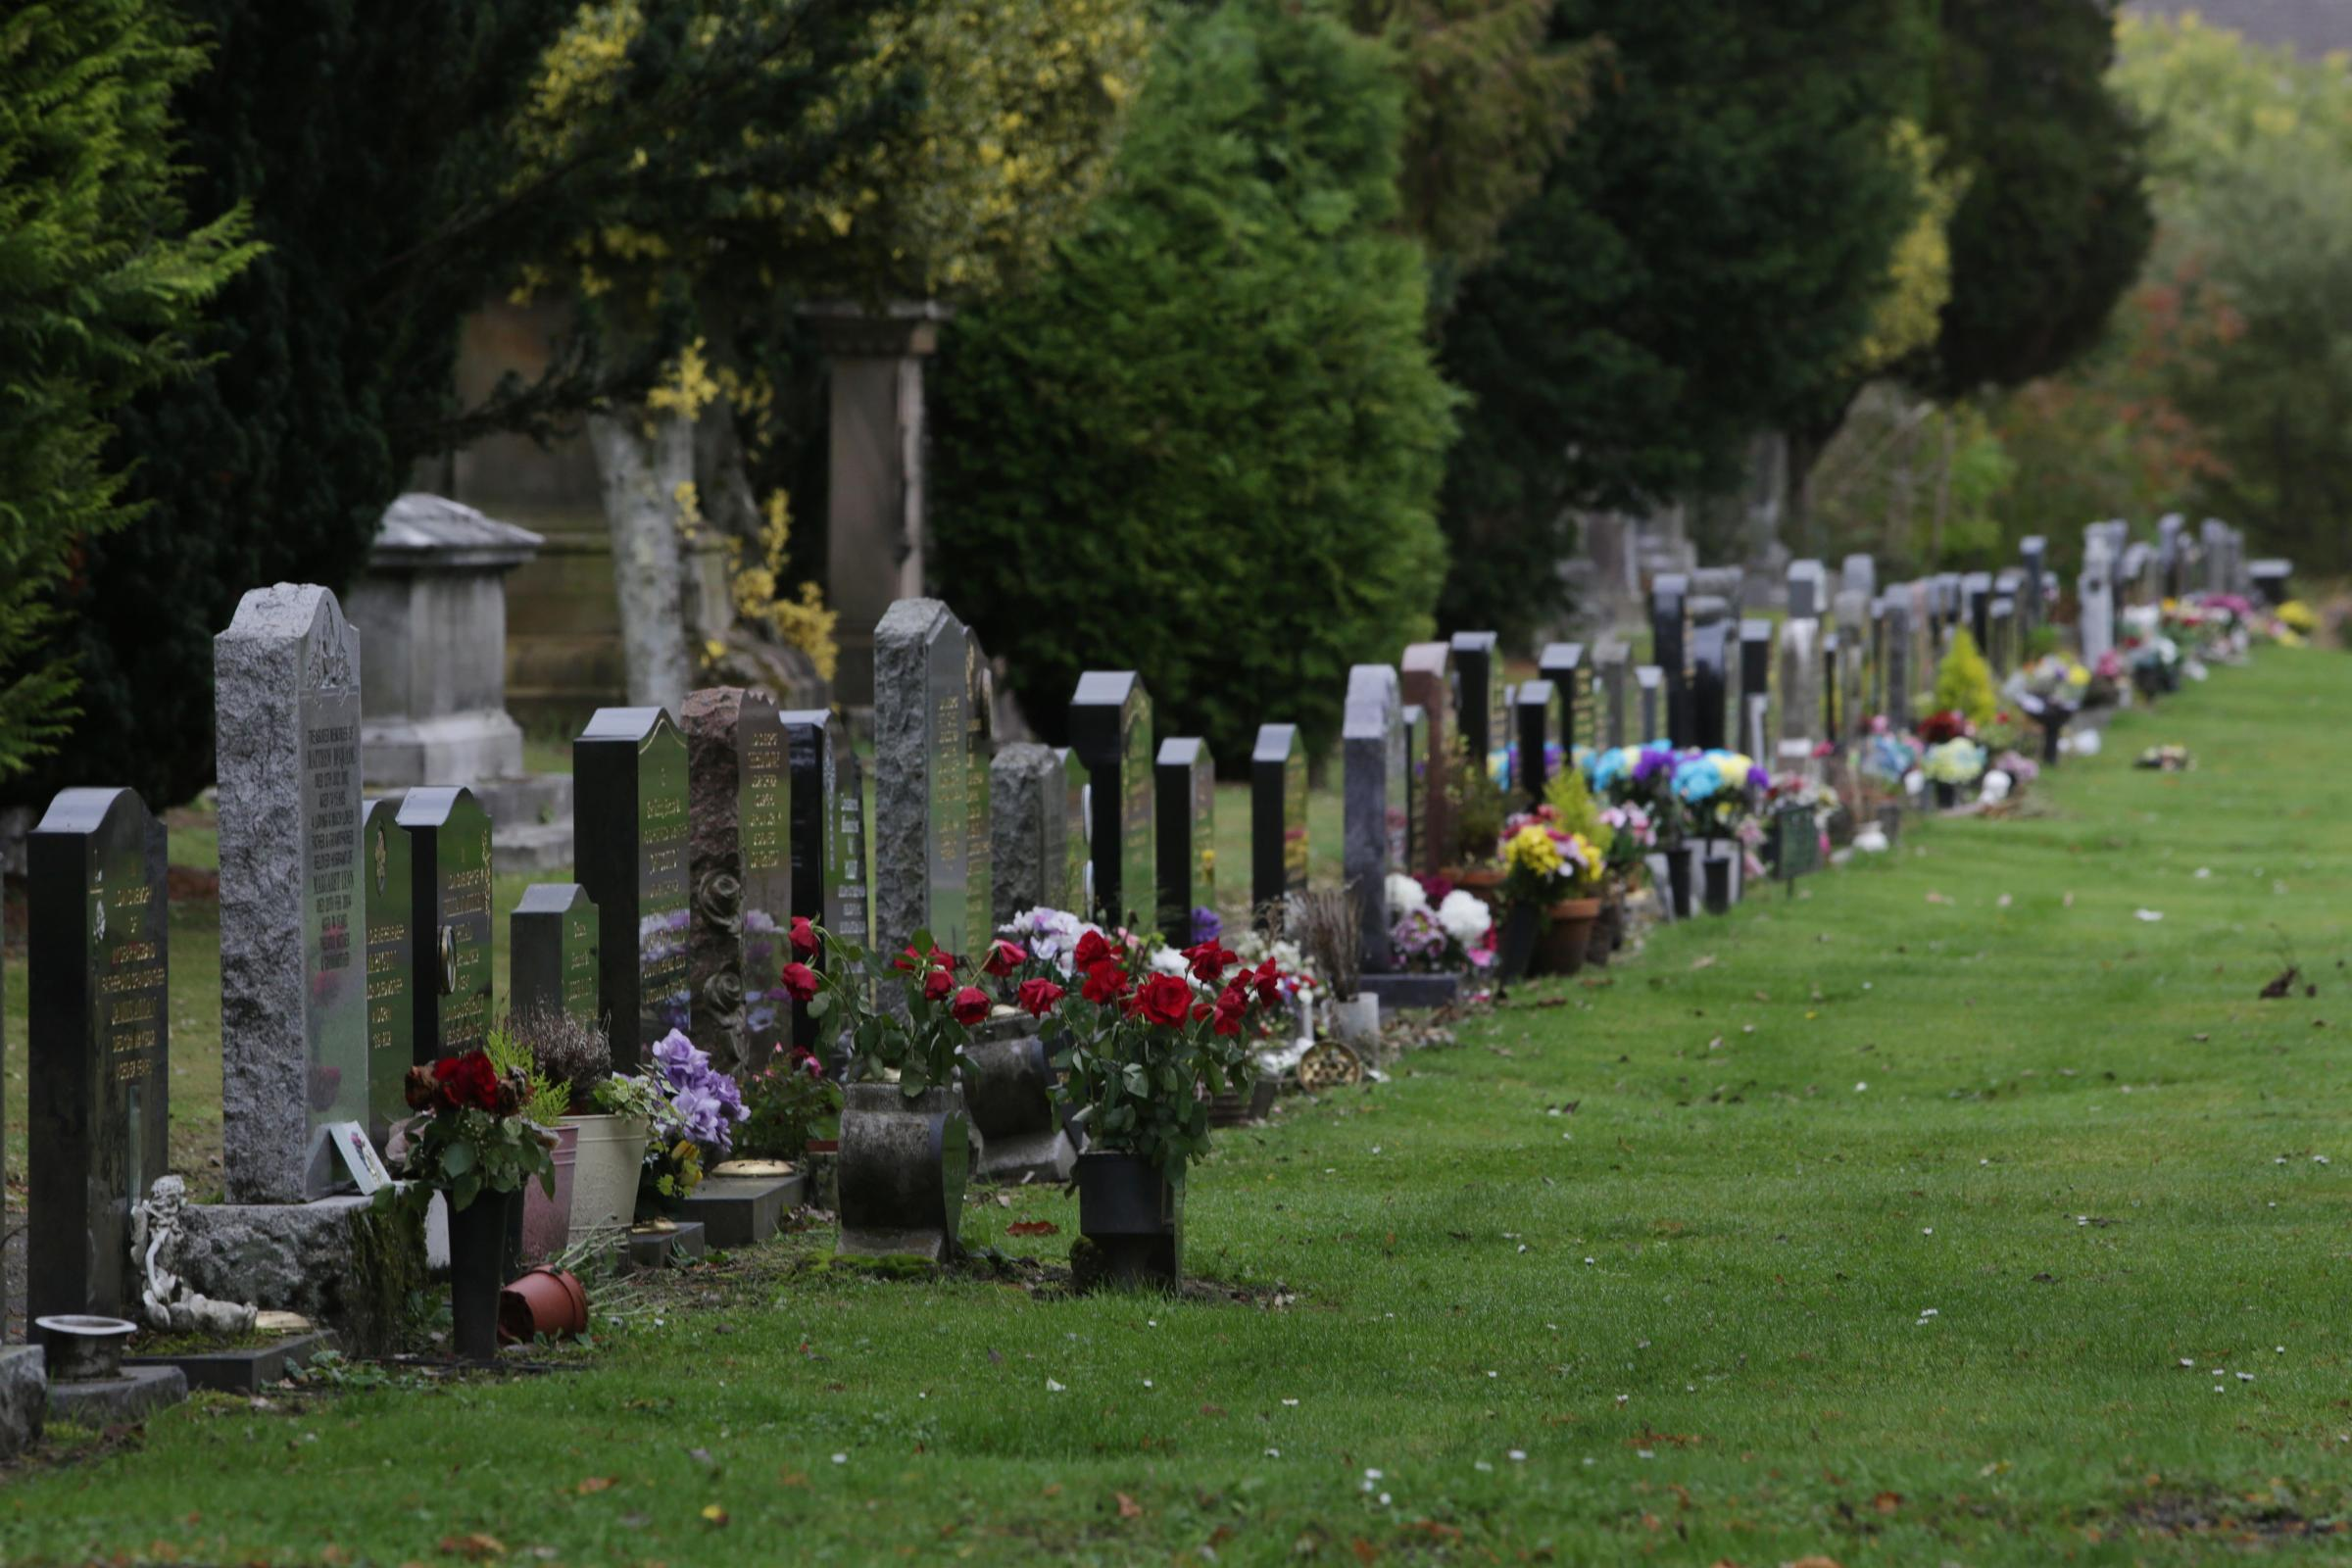 The council will no longer charge fees for the burial or cremation of anyone under 18